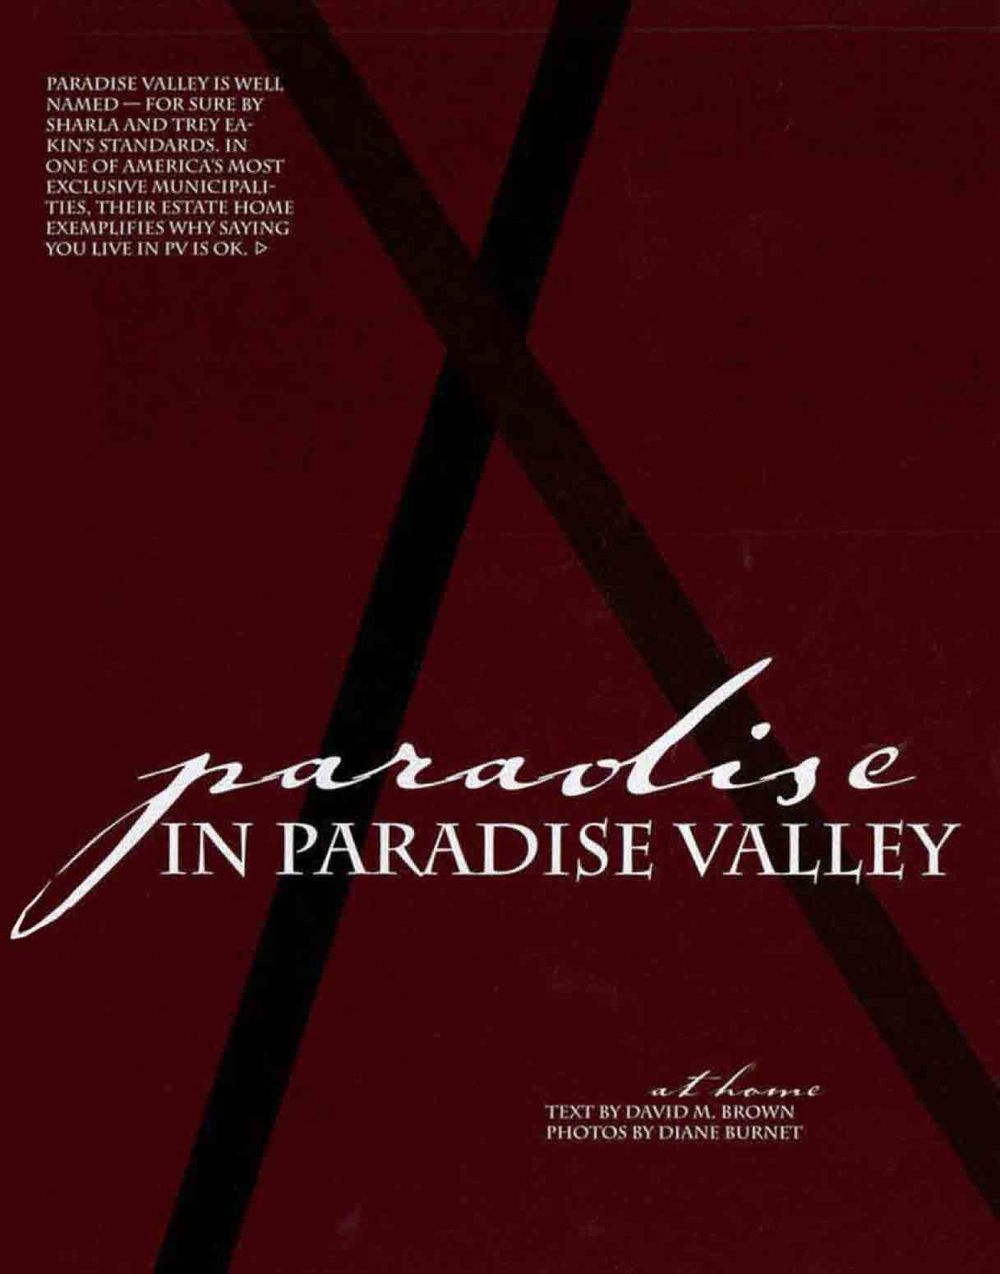 2b paradise in paradise valley 72.jpg